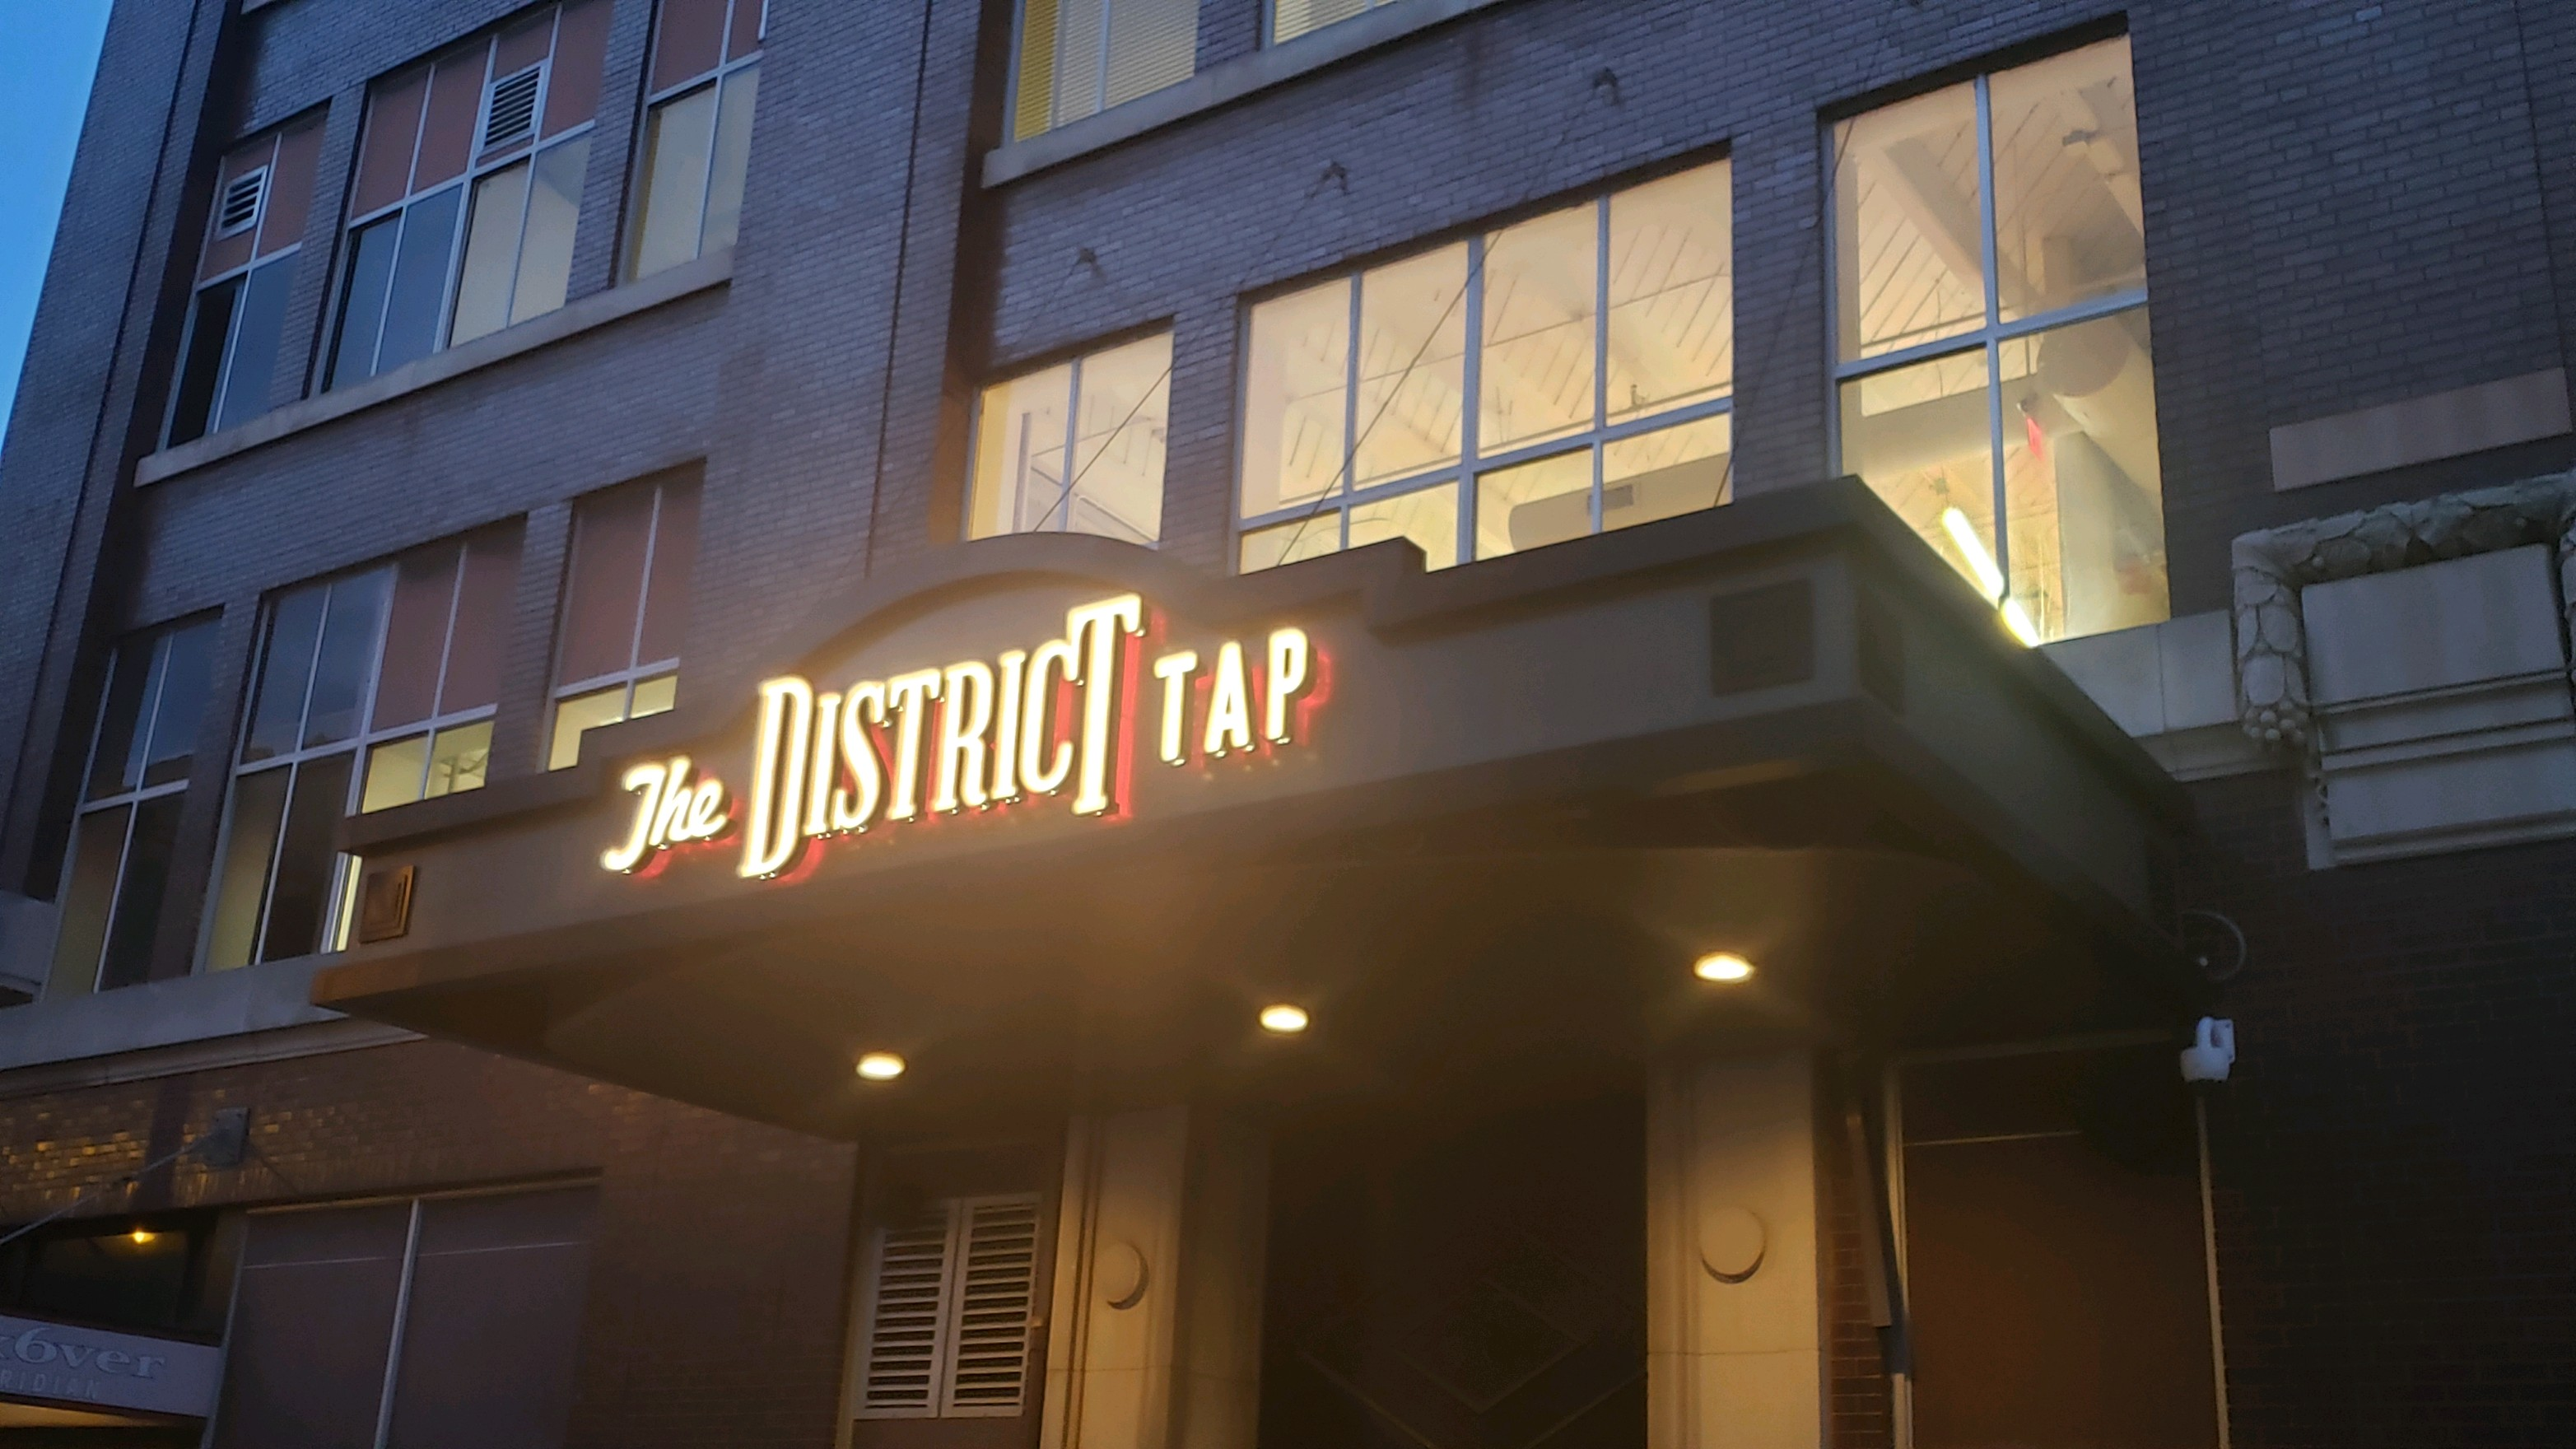 District Tap Exterior signage